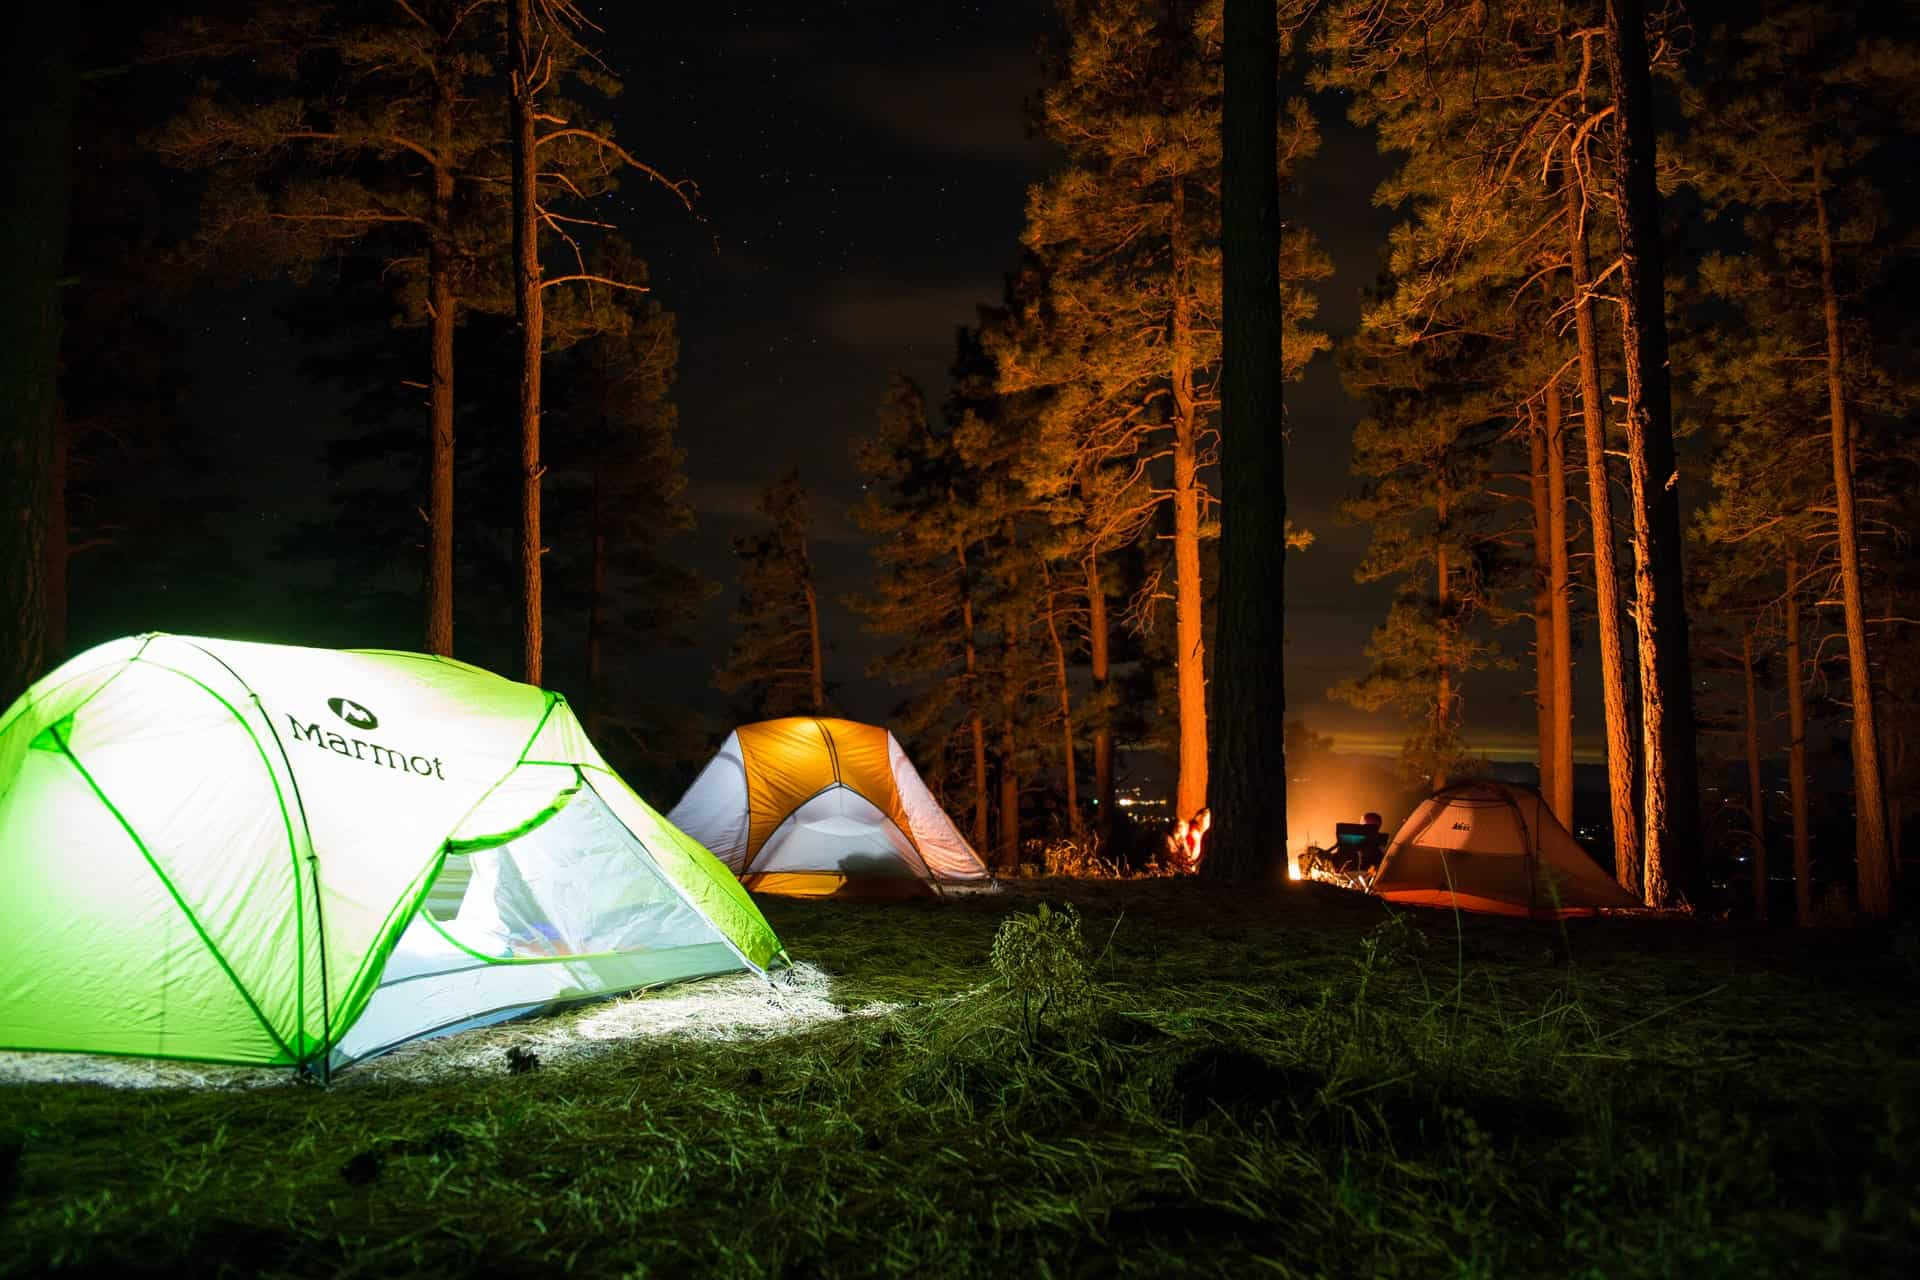 Lit up tents in the woods